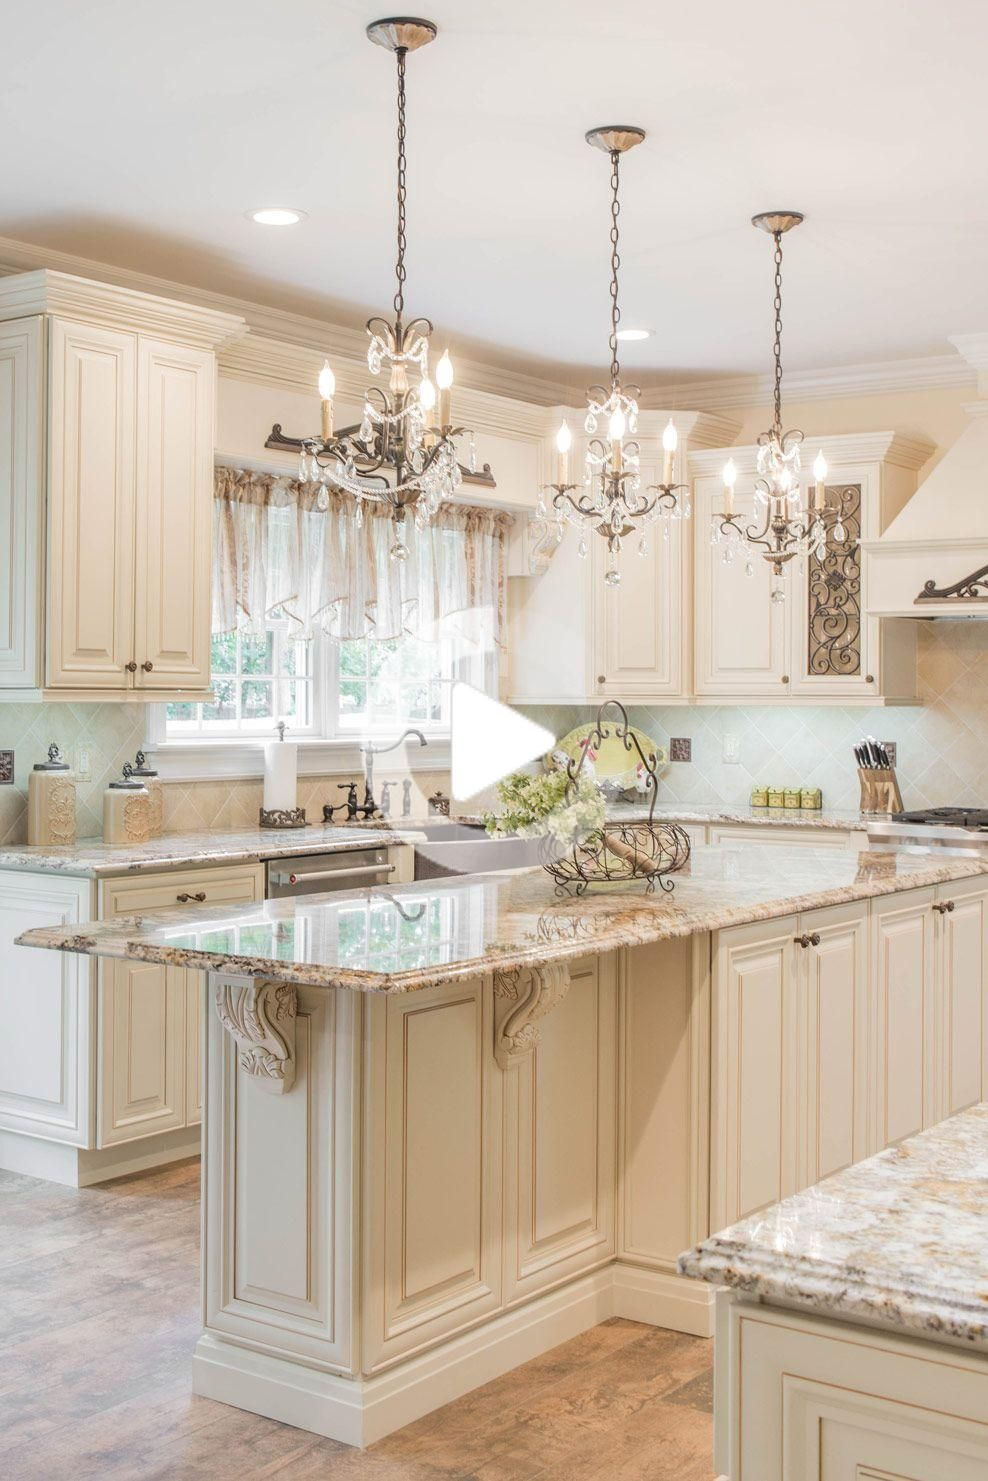 Home Cabinet Westbury A7 Style Creme Maple Glazed Classic Kitchen Cabinets In 2020 Classic Kitchen Cabinets Country Kitchen Cabinets Brown Kitchen Cabinets